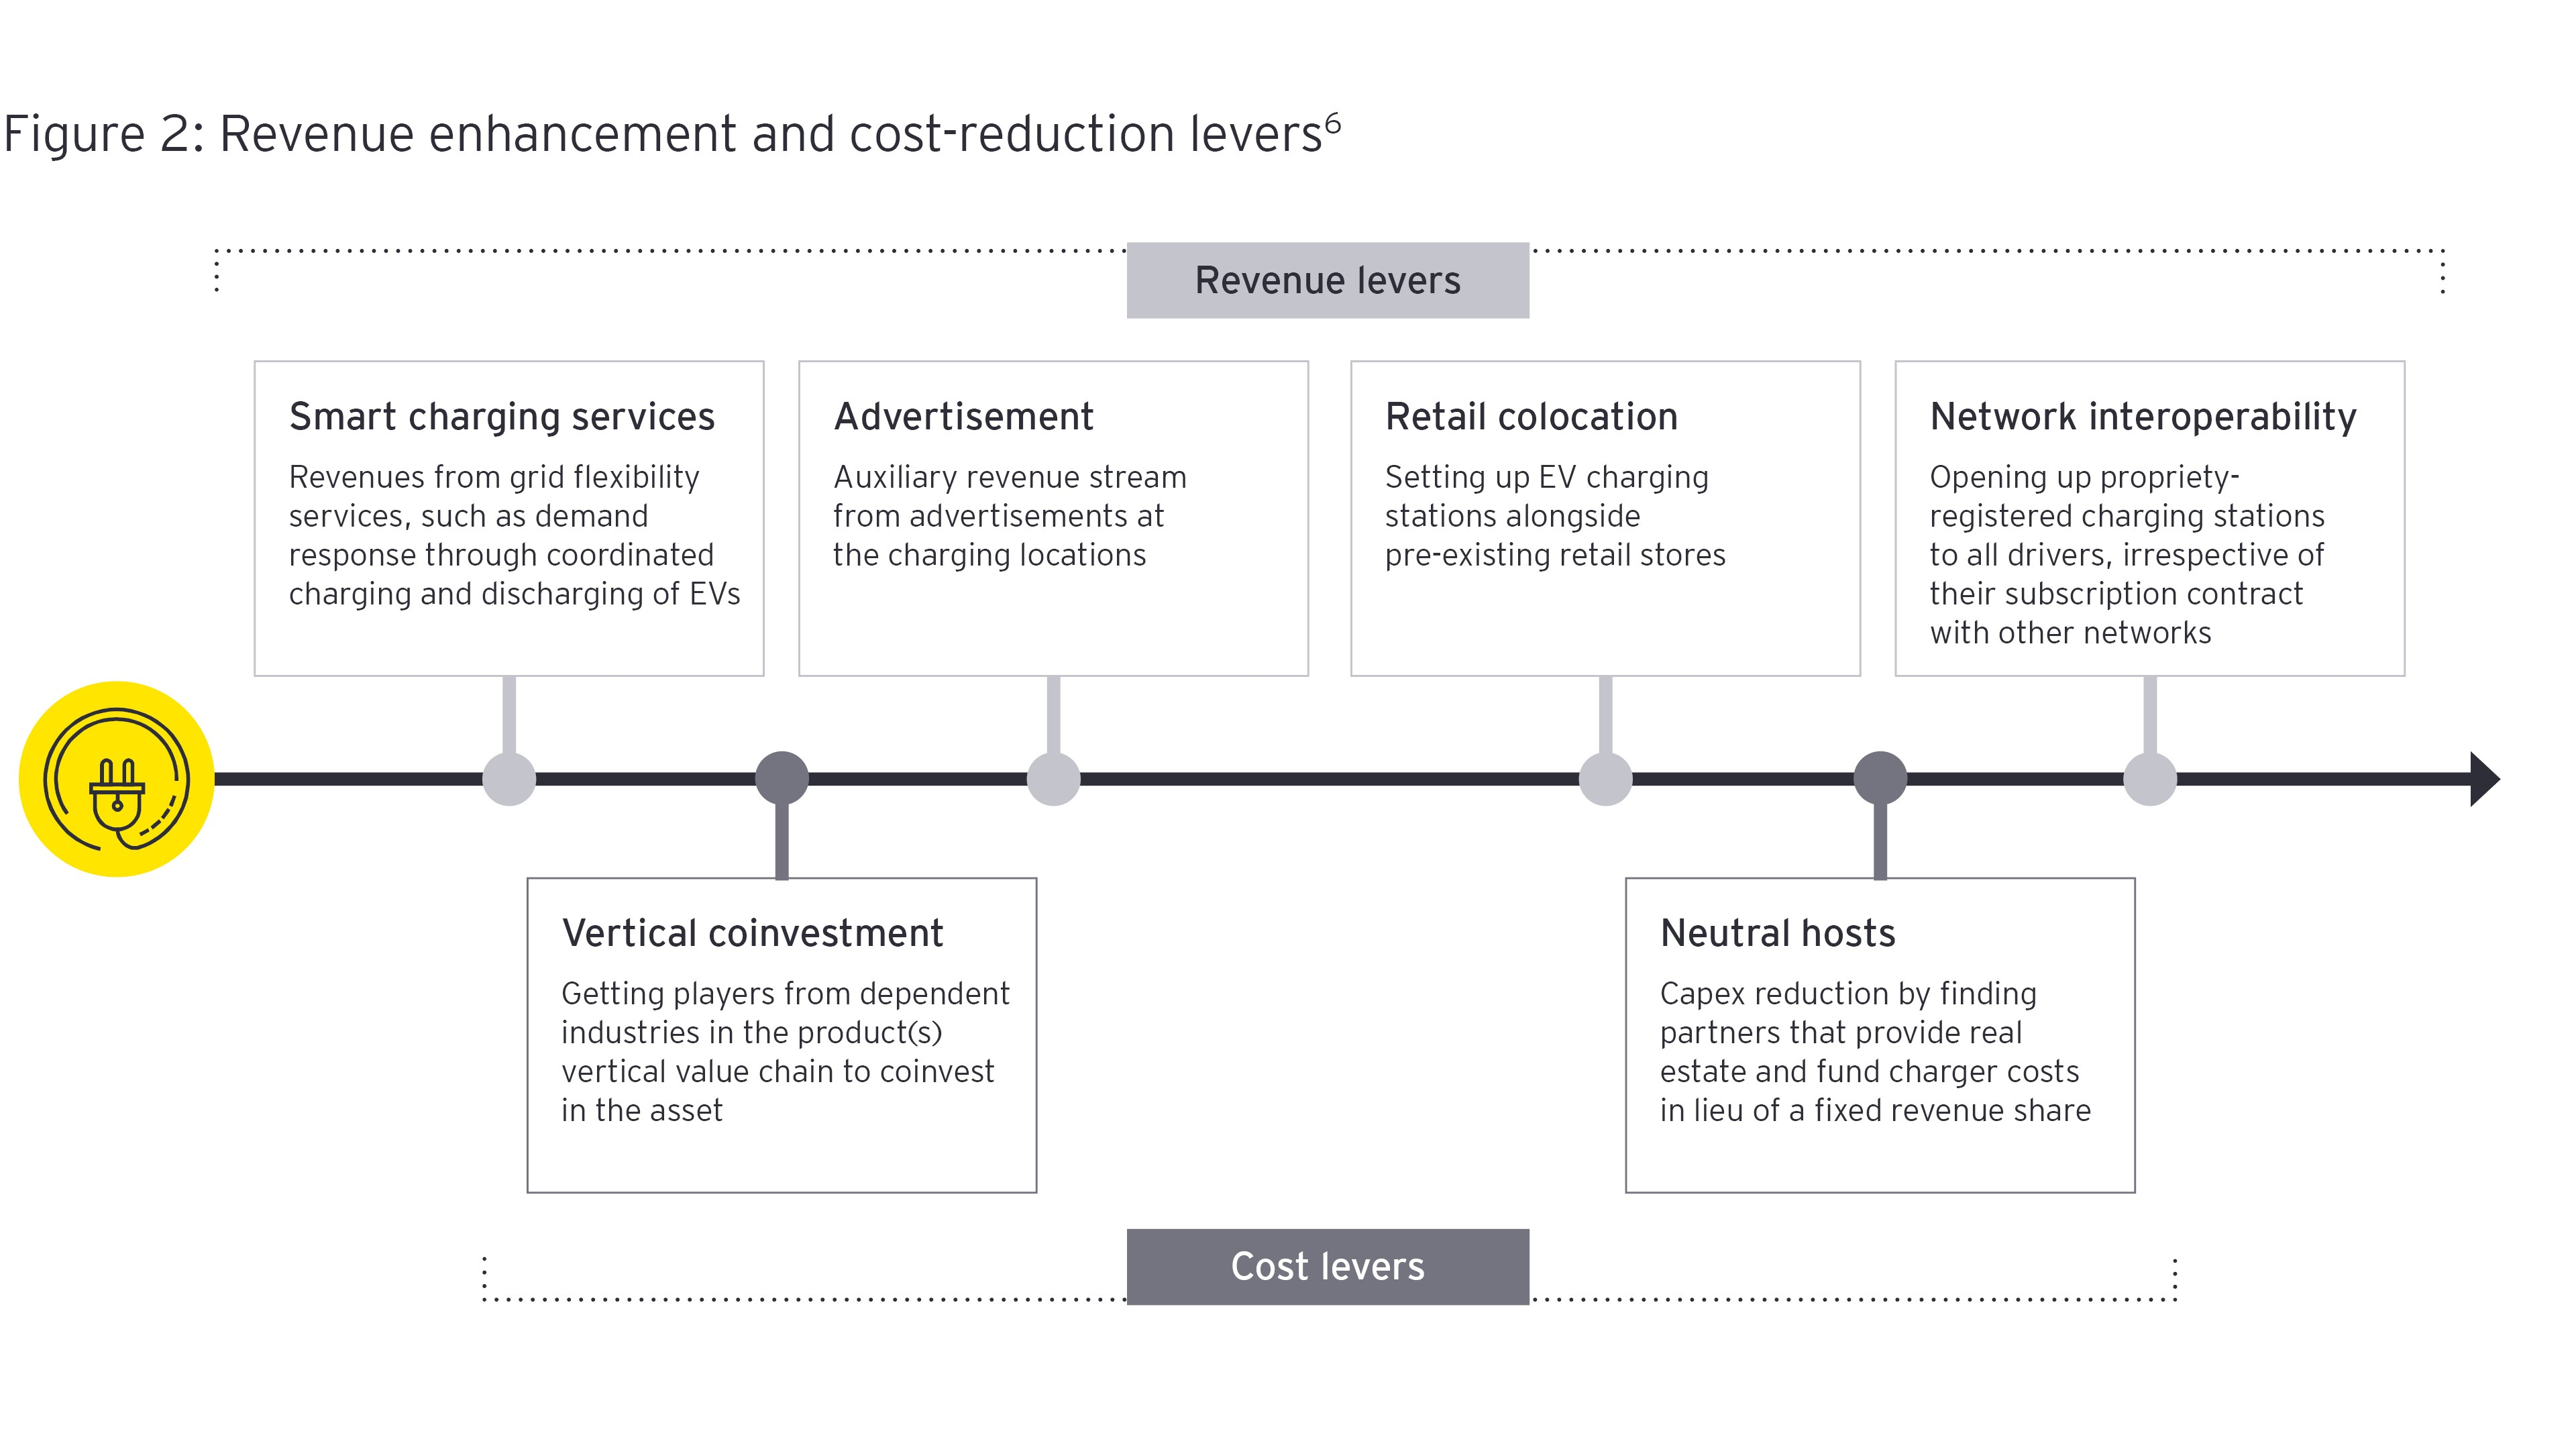 Revenue enhancement and cost reduction levers Infographic